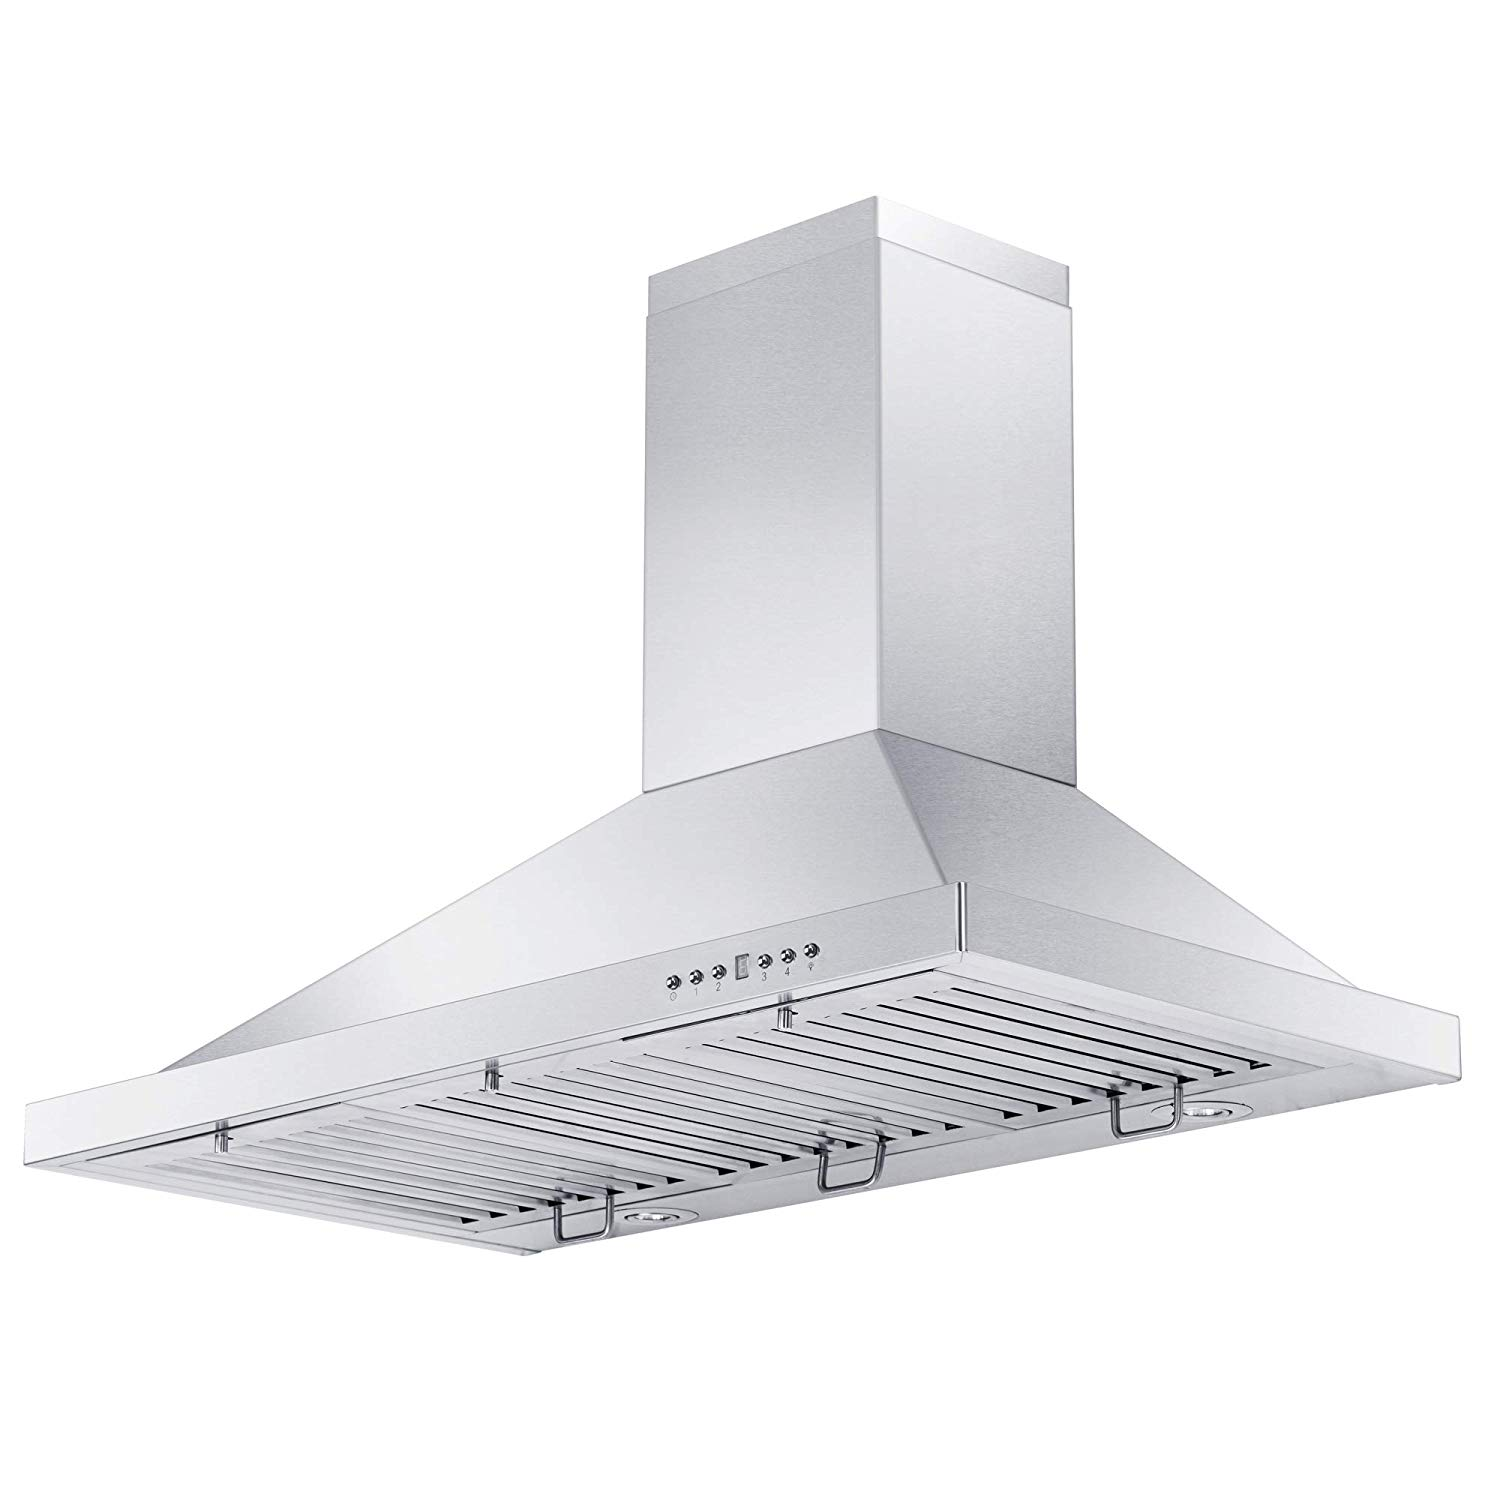 Zline kb-36 stainless steel wall mount range hood